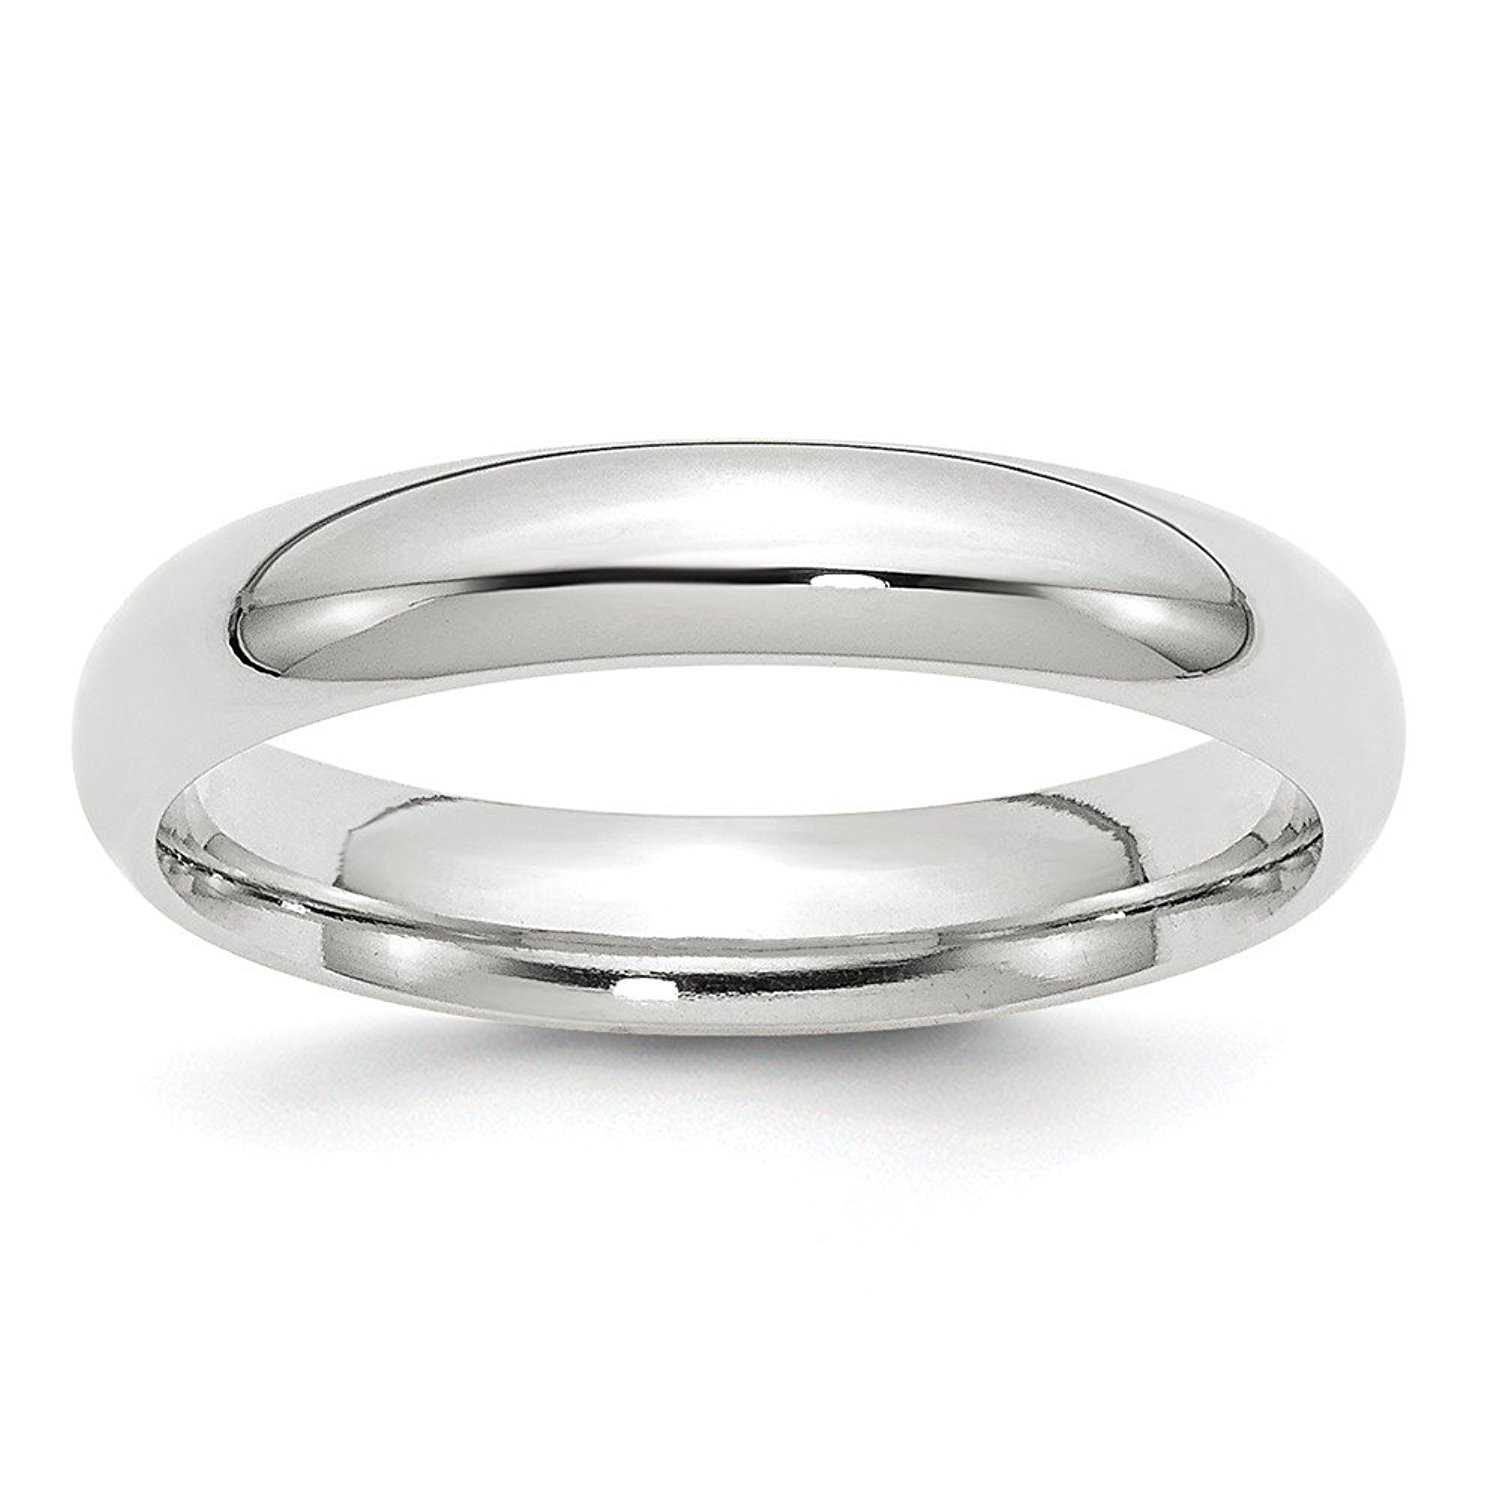 Perfect Jewelry Gift 10KW 4mm Standard Comfort Fit Band Size 9